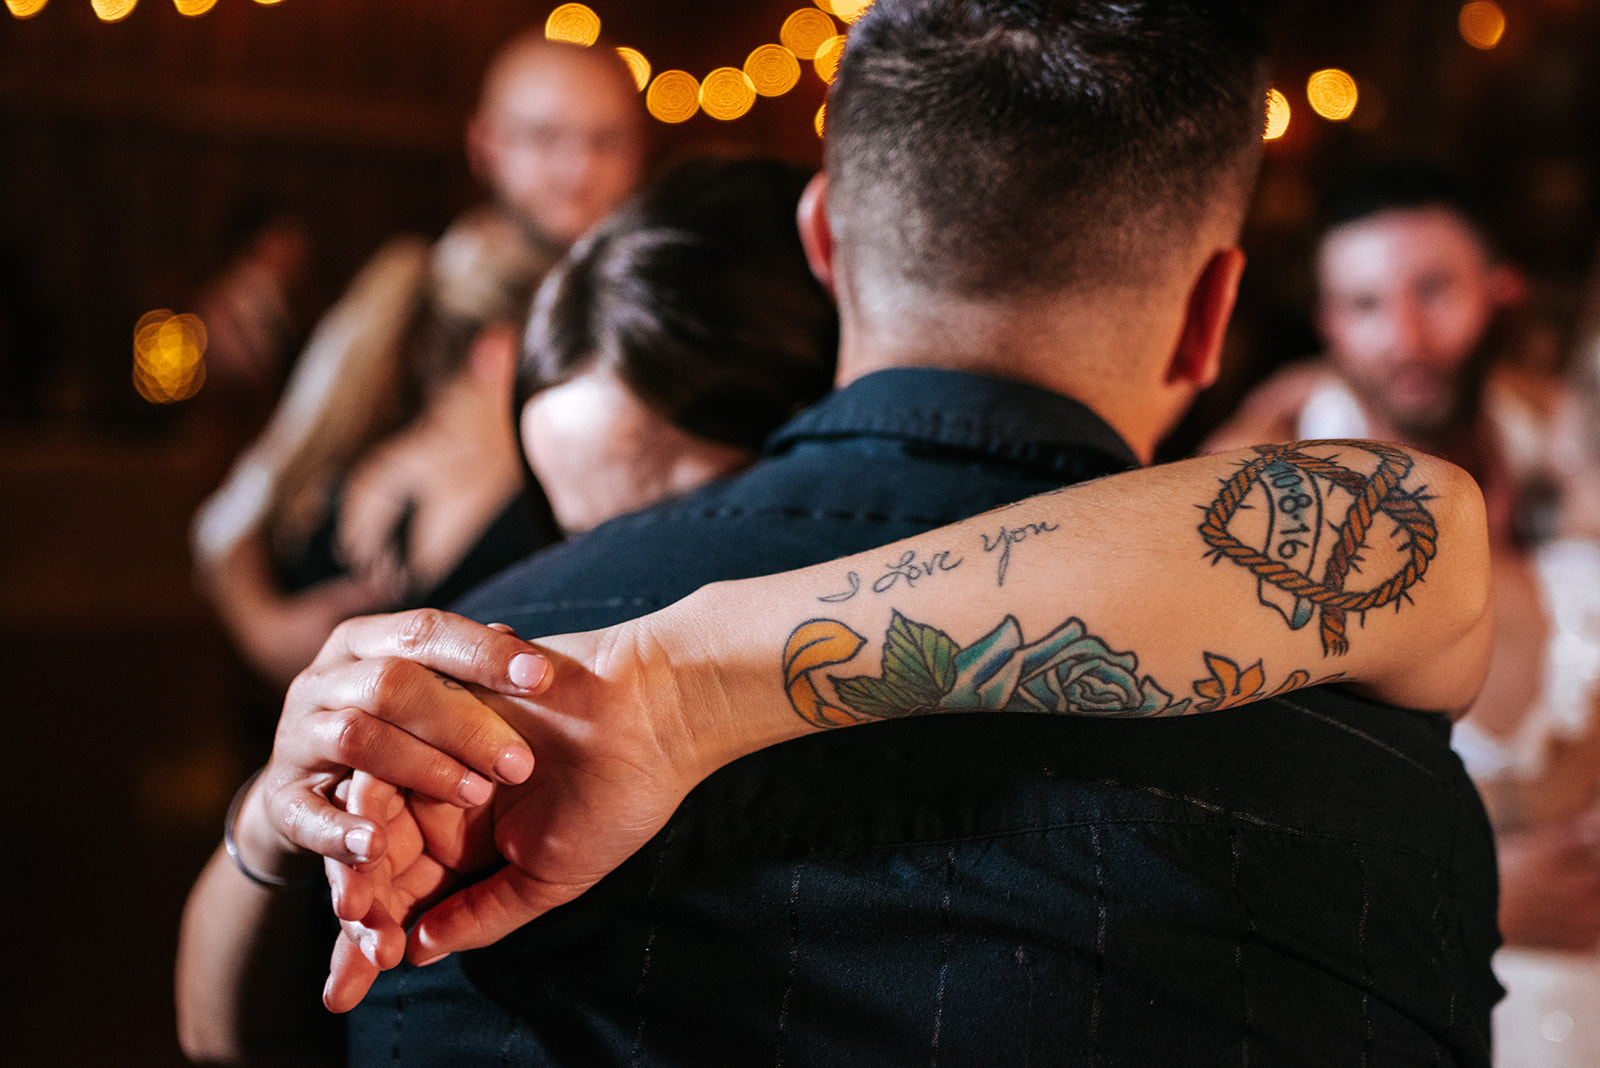 overthevineswisconsinwedding_1577.jpg